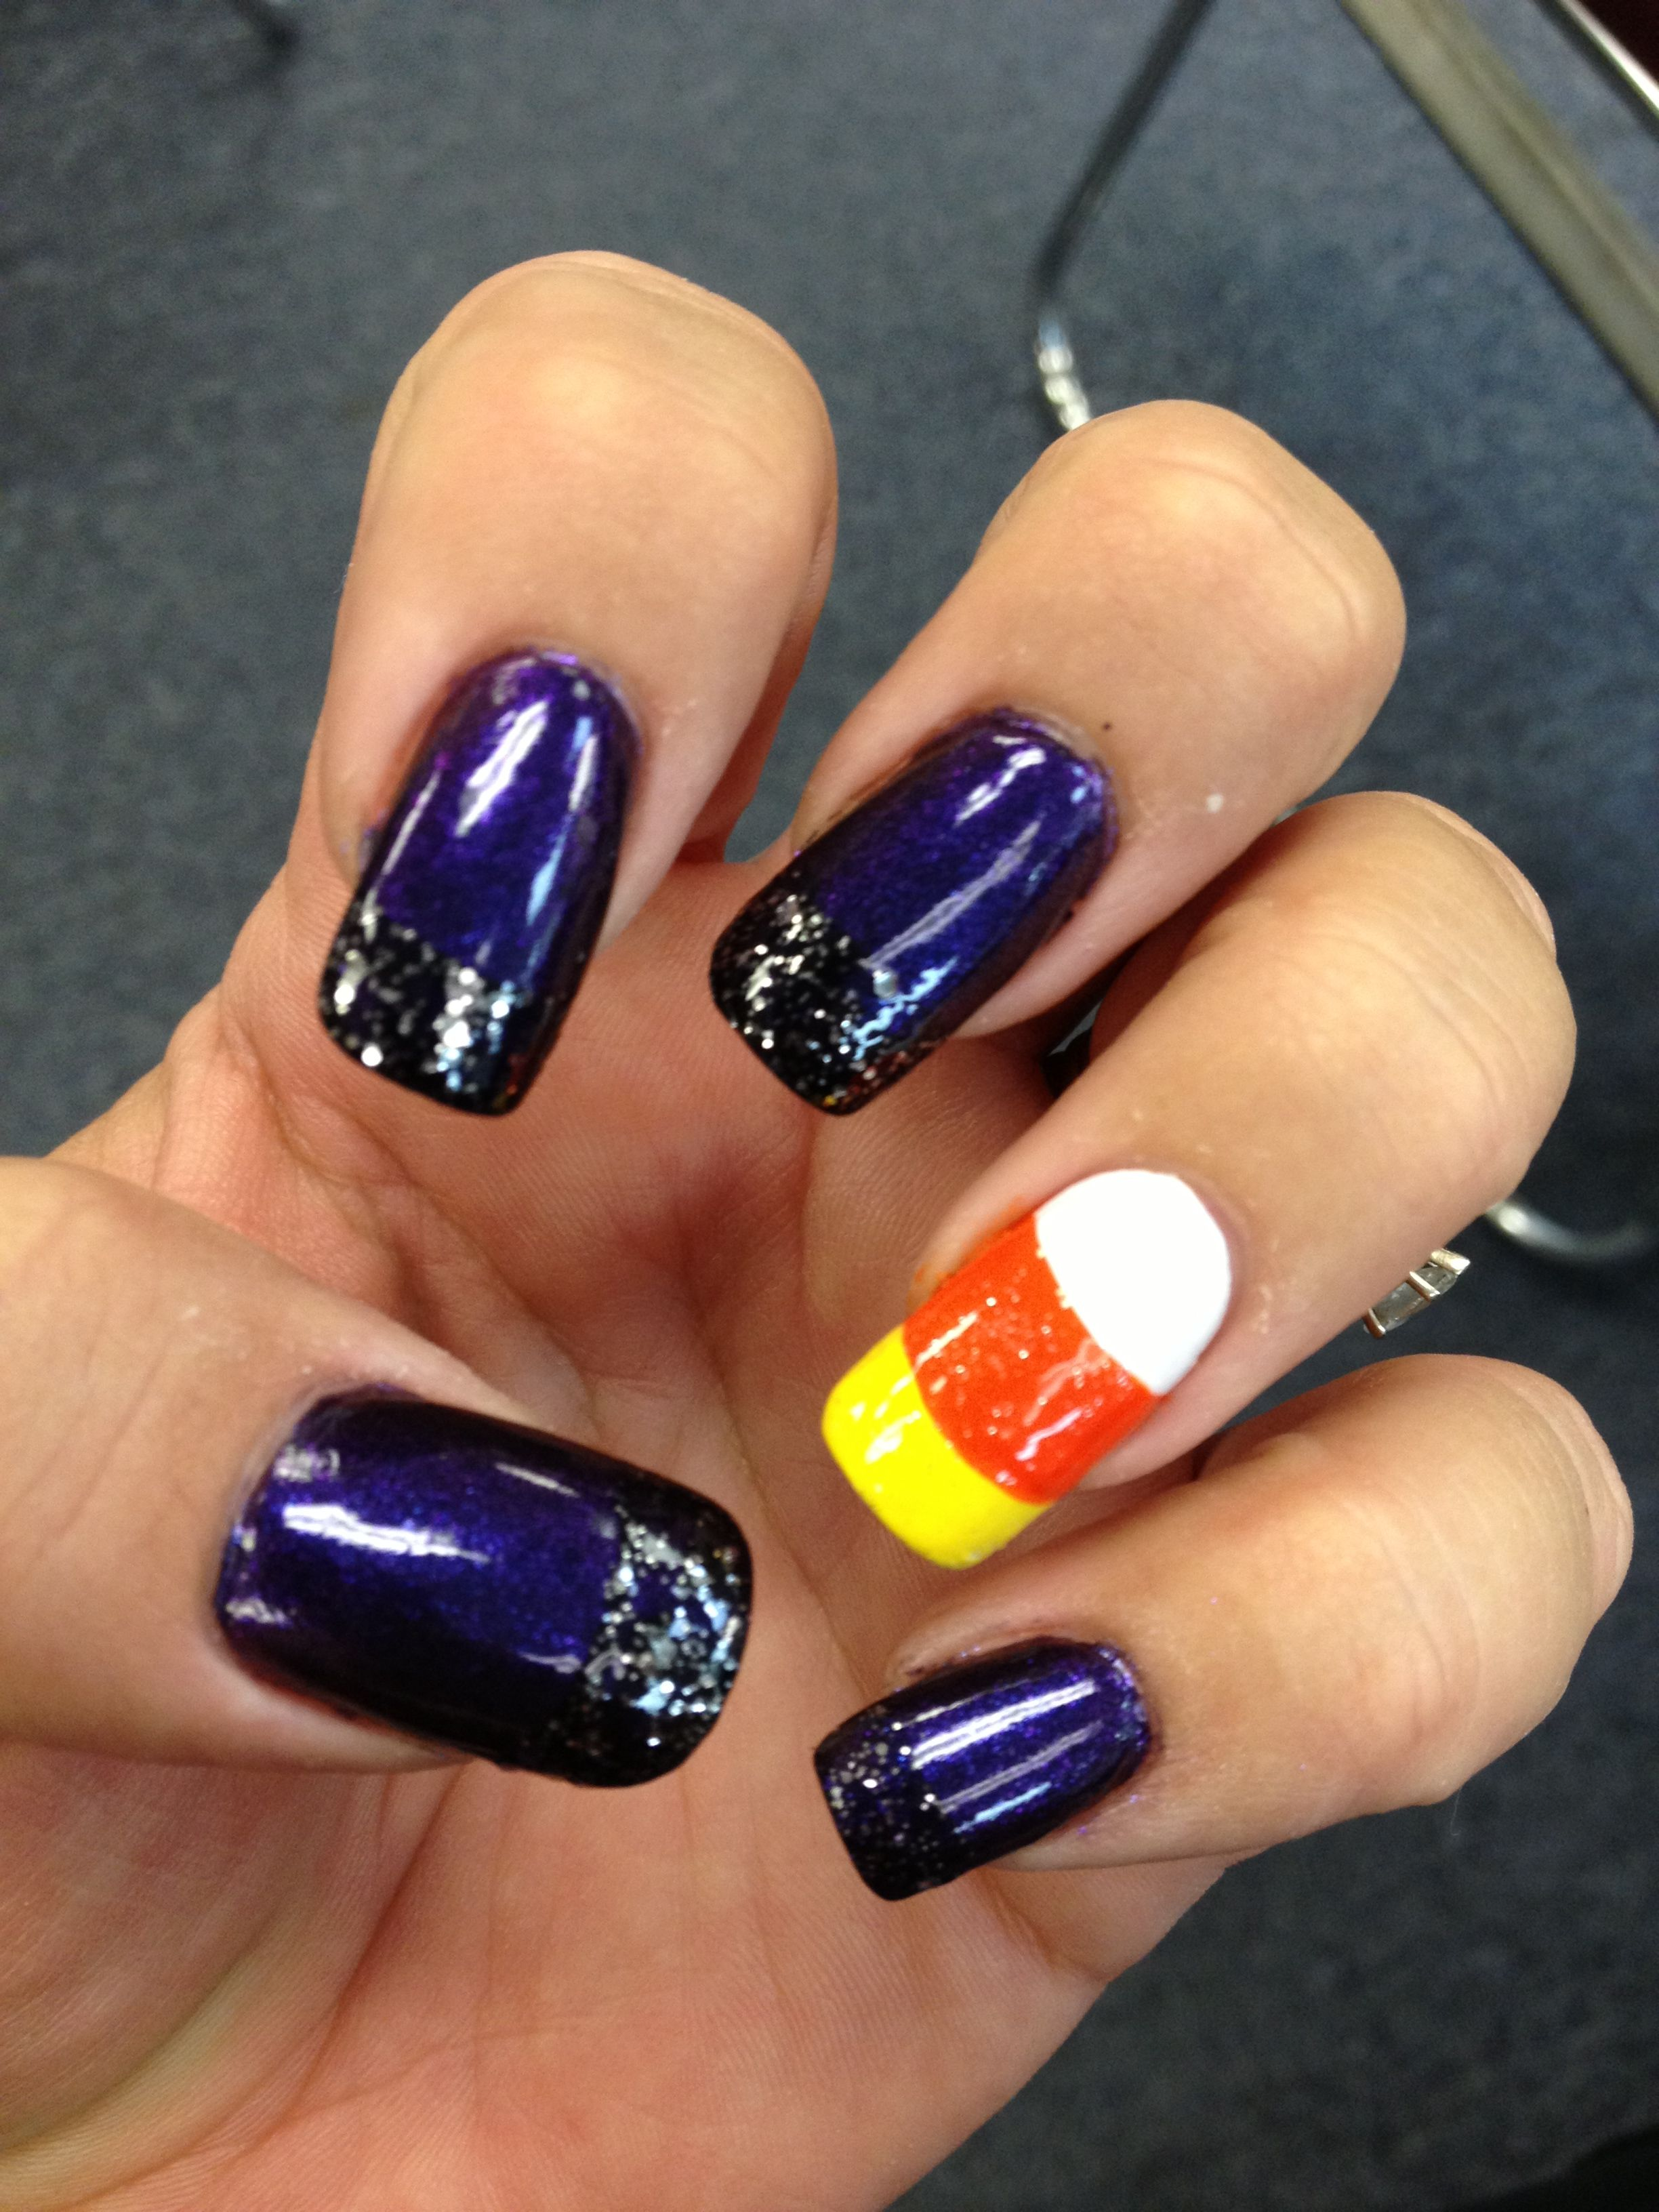 nails Halloween purple black glitter (With images ...